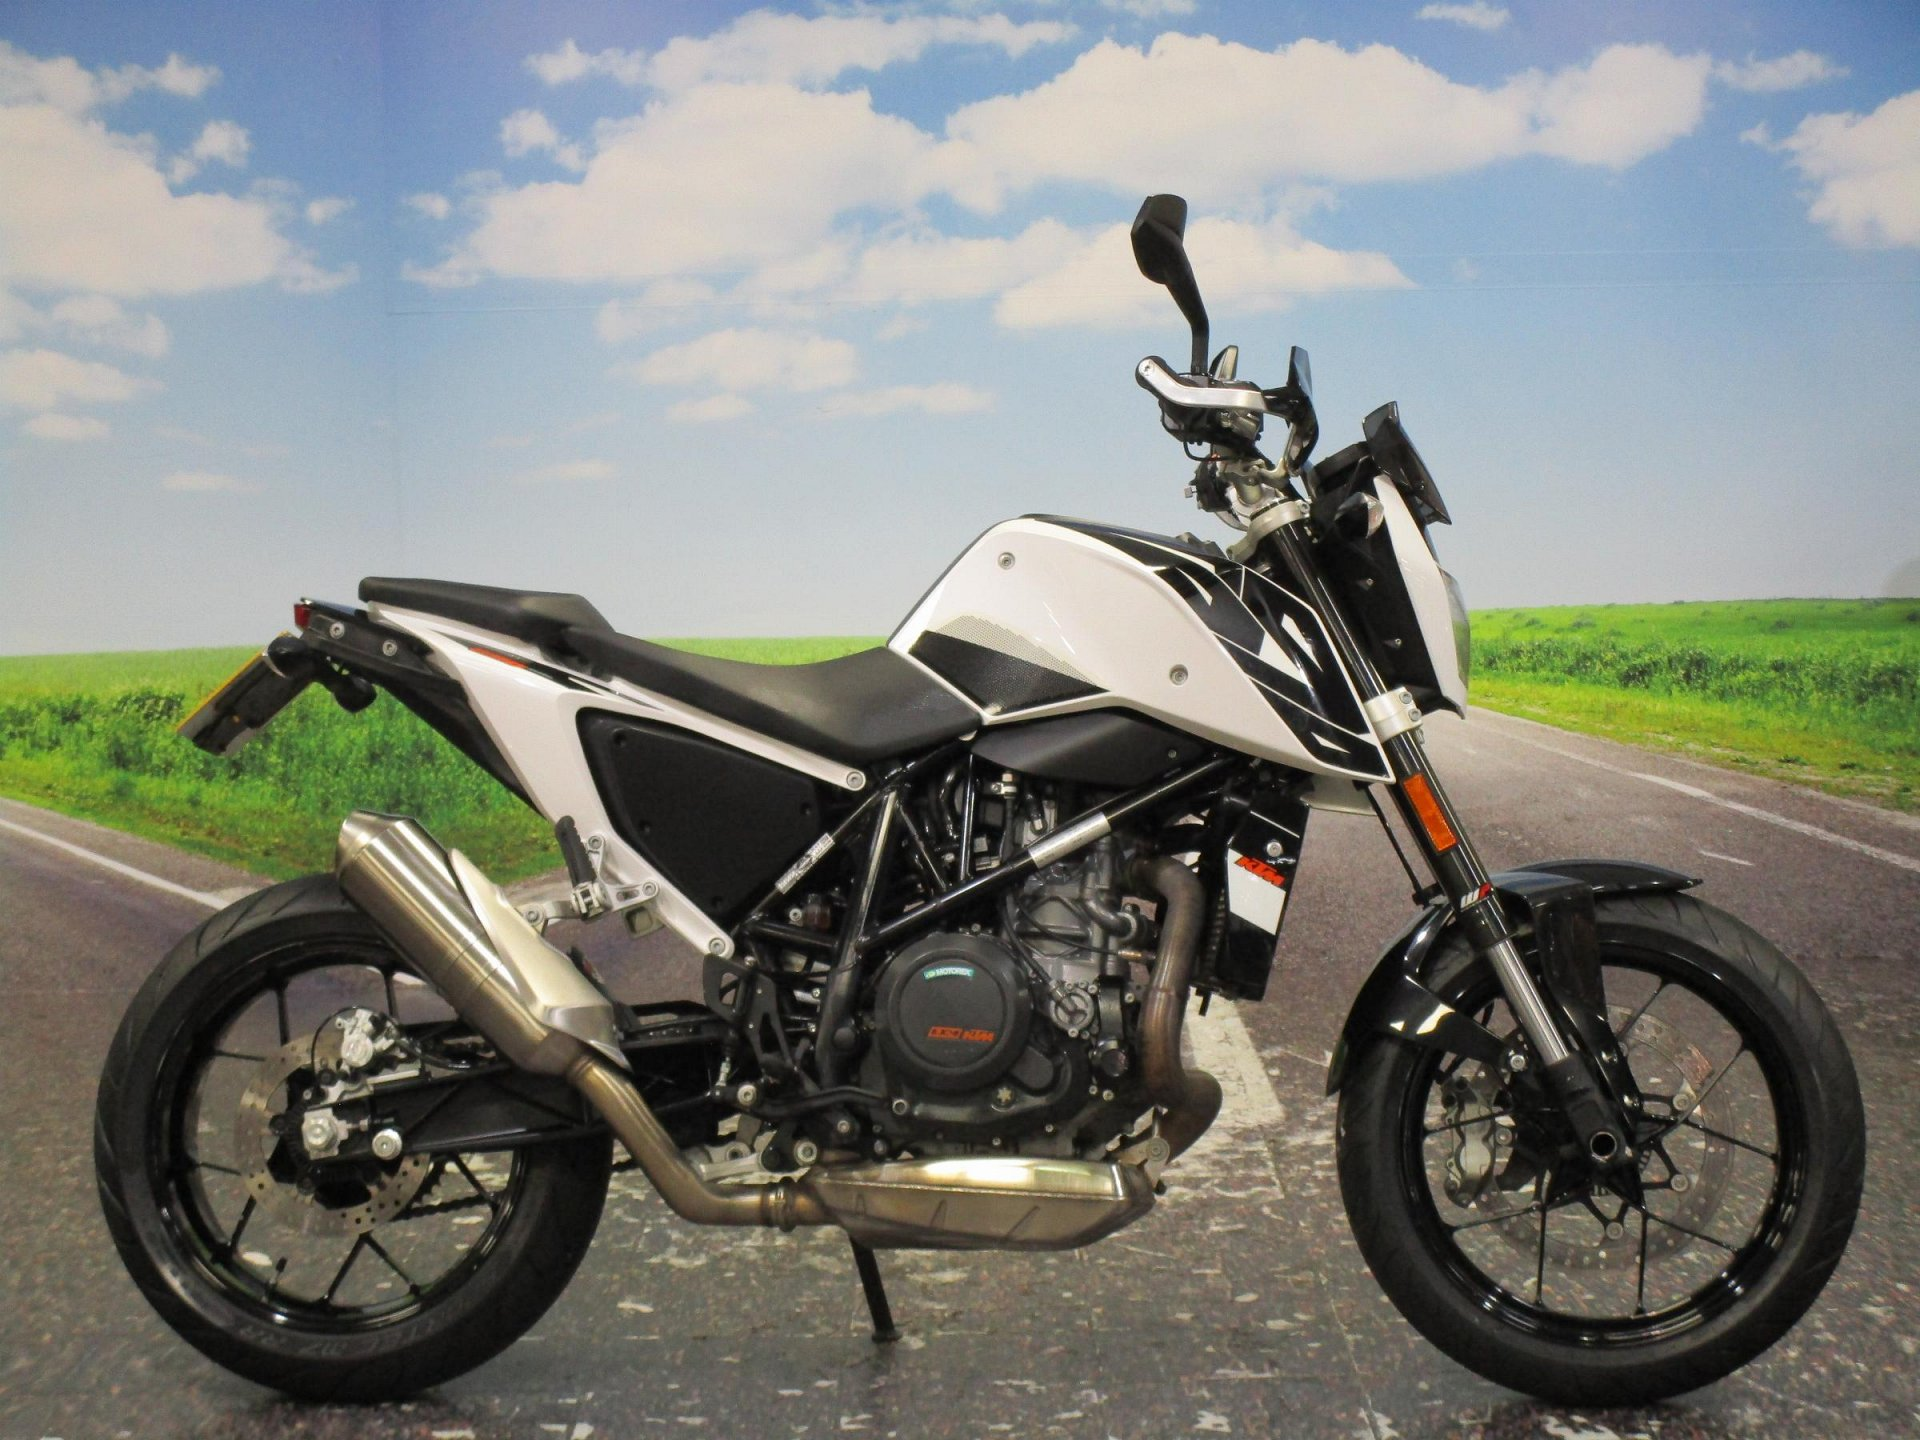 2016 KTM 690 Duke 16 for sale in Derbyshire